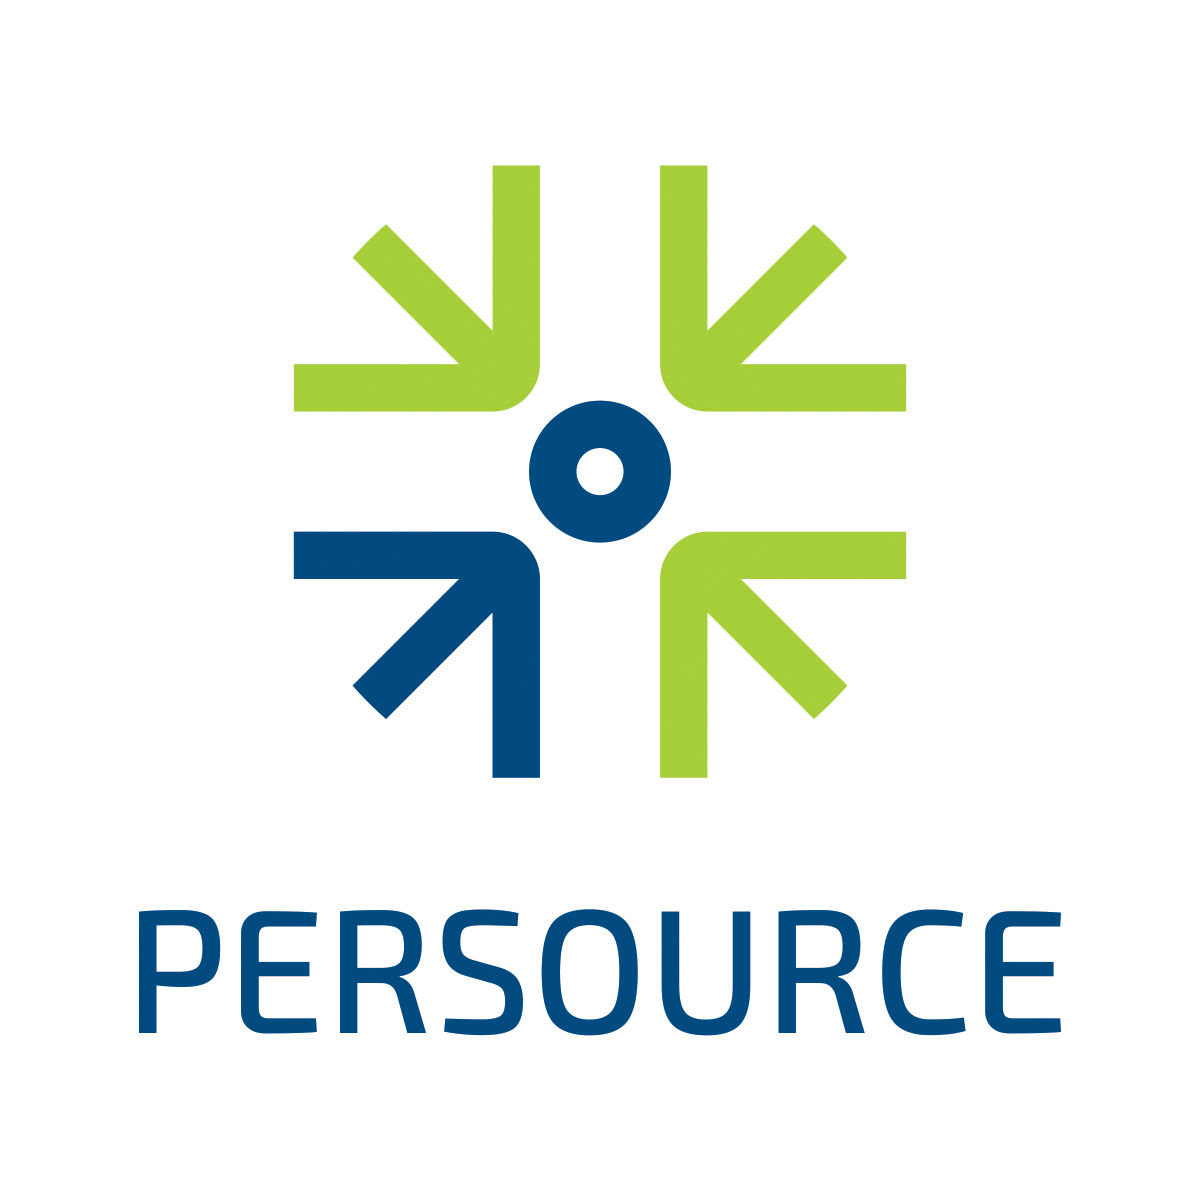 Persource S.R.L.